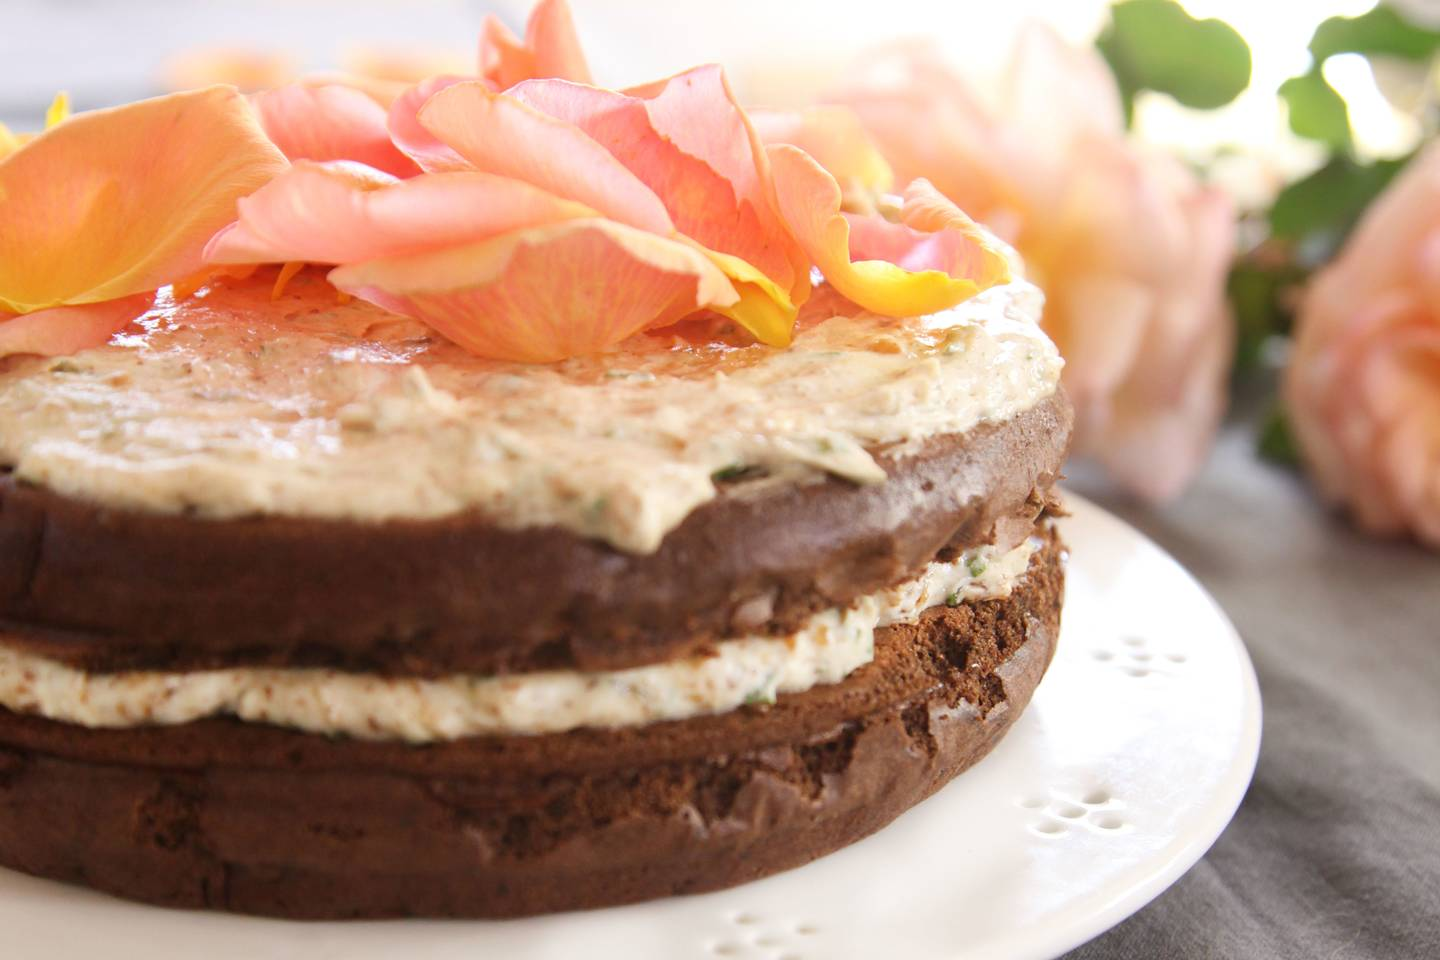 Chocolate cloud cake with nut cream and rose petals